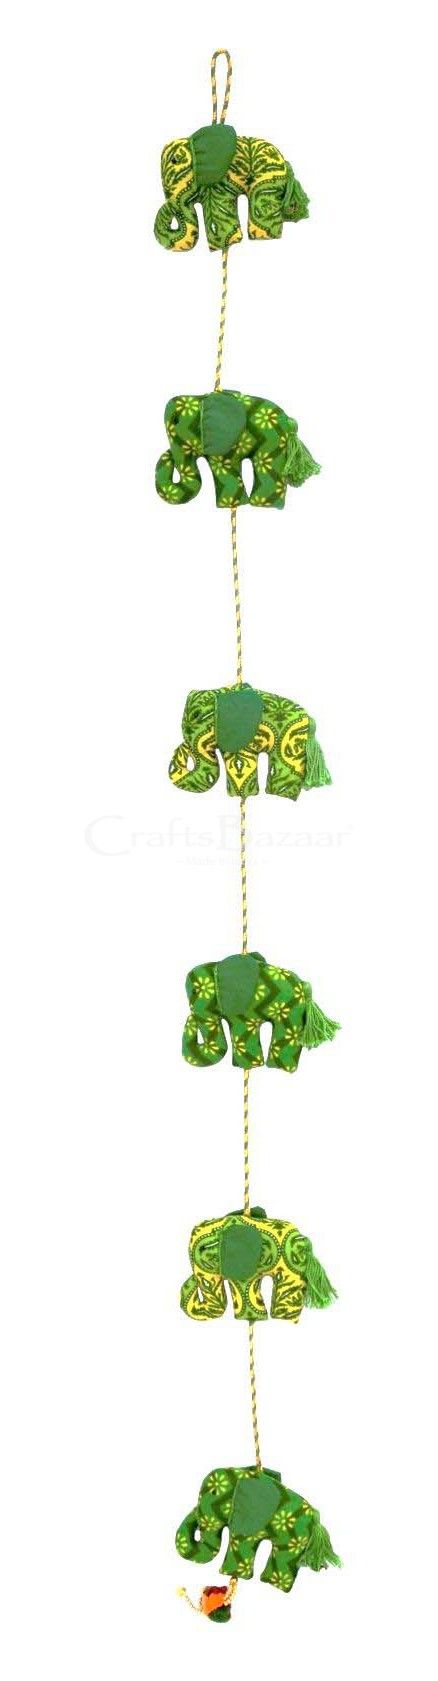 This is an embellished wall hanging, widely used in worldwide. It is a traditional item. This is an Indian handmade green elephant door hanging hand art. Each one has been handcrafted, hand printed. This wall hanging gives a royal touch to your home with this patch and embroidery work. Highlighting the fine and elaborate detailing, this beautiful art surprise for loved one; this designer wall hanging absolutely is an exclusive choice for your home d #artsandcrafts #craftsofindia…